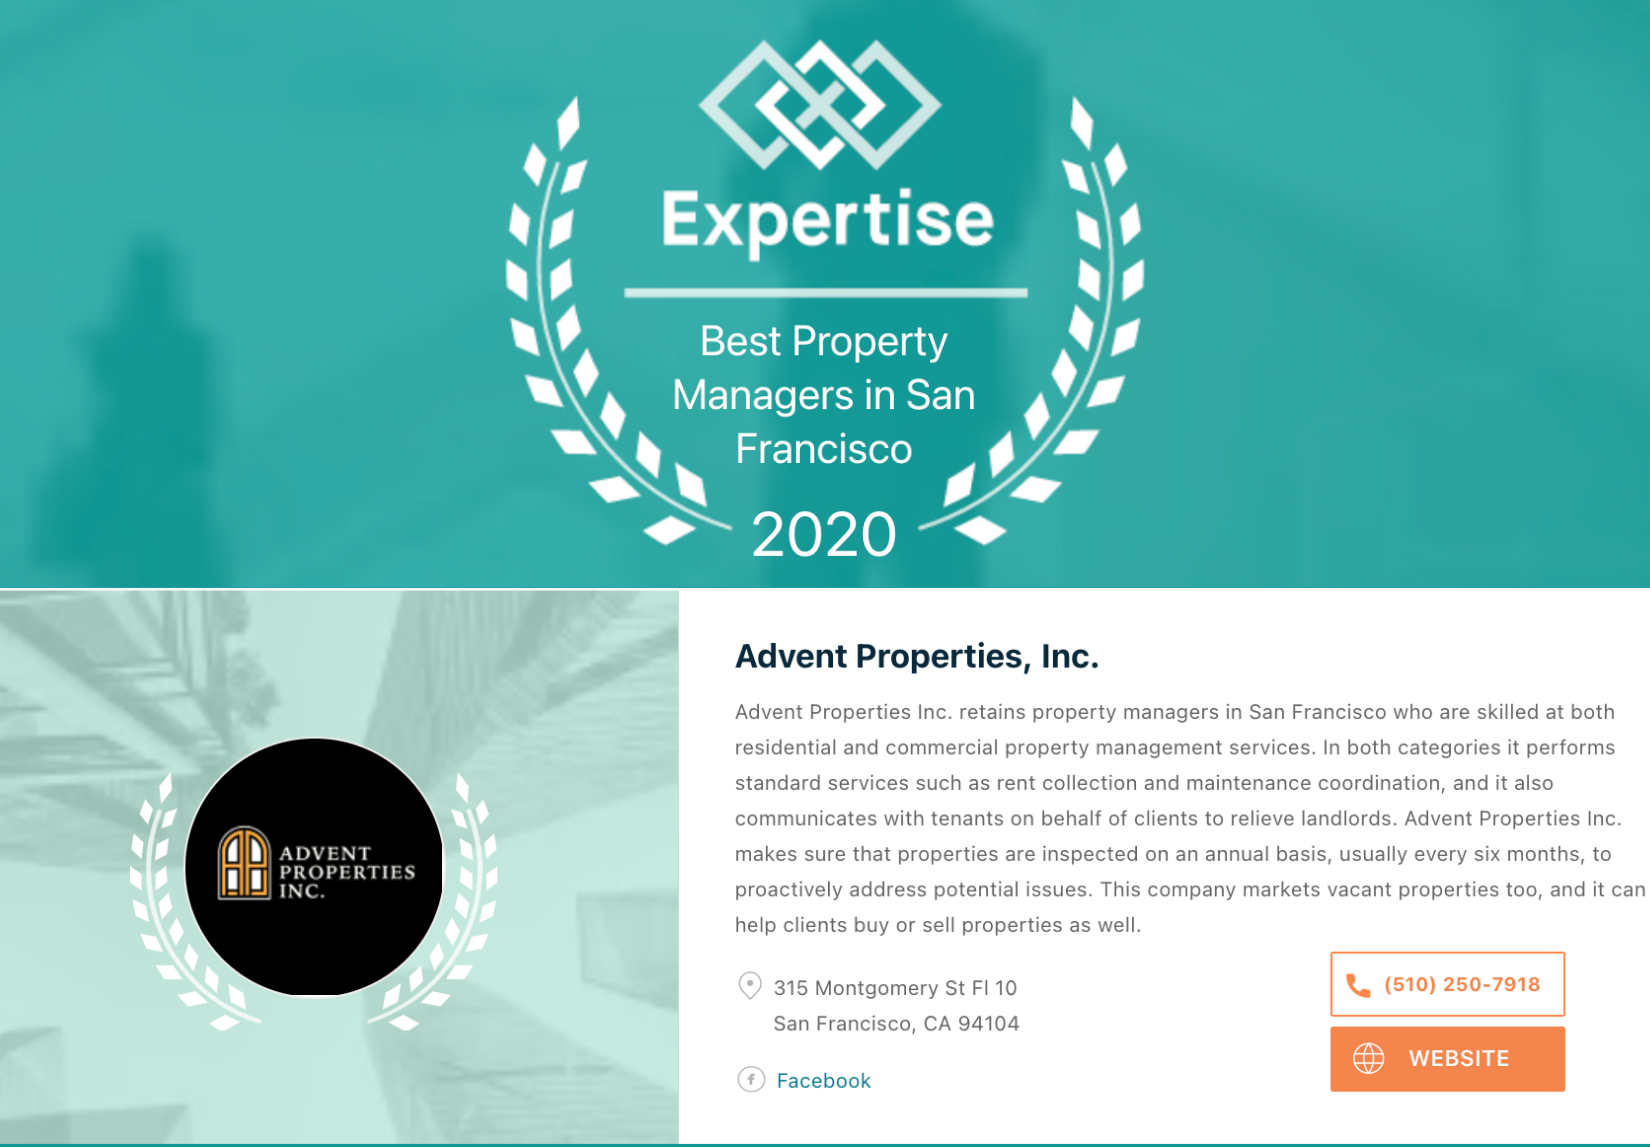 Expertise.com's 2020 Best Property Managers in San Francisco